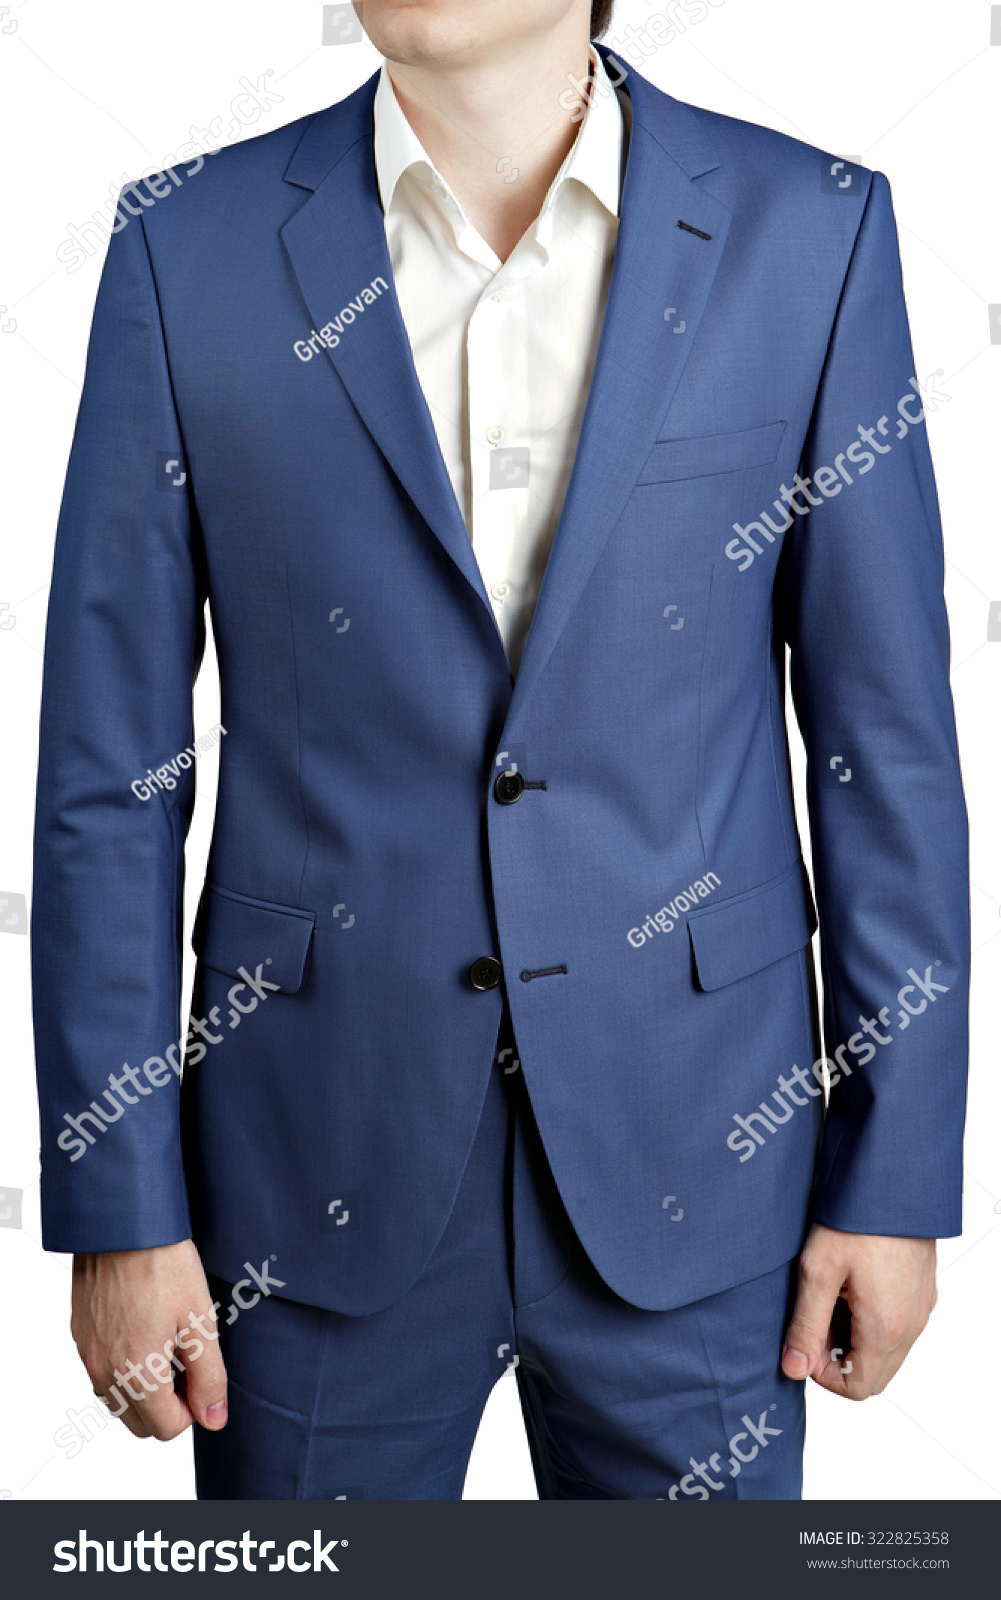 Colors Ocean Blue Stylish Mens Suit Stock Photo 322825358 ...